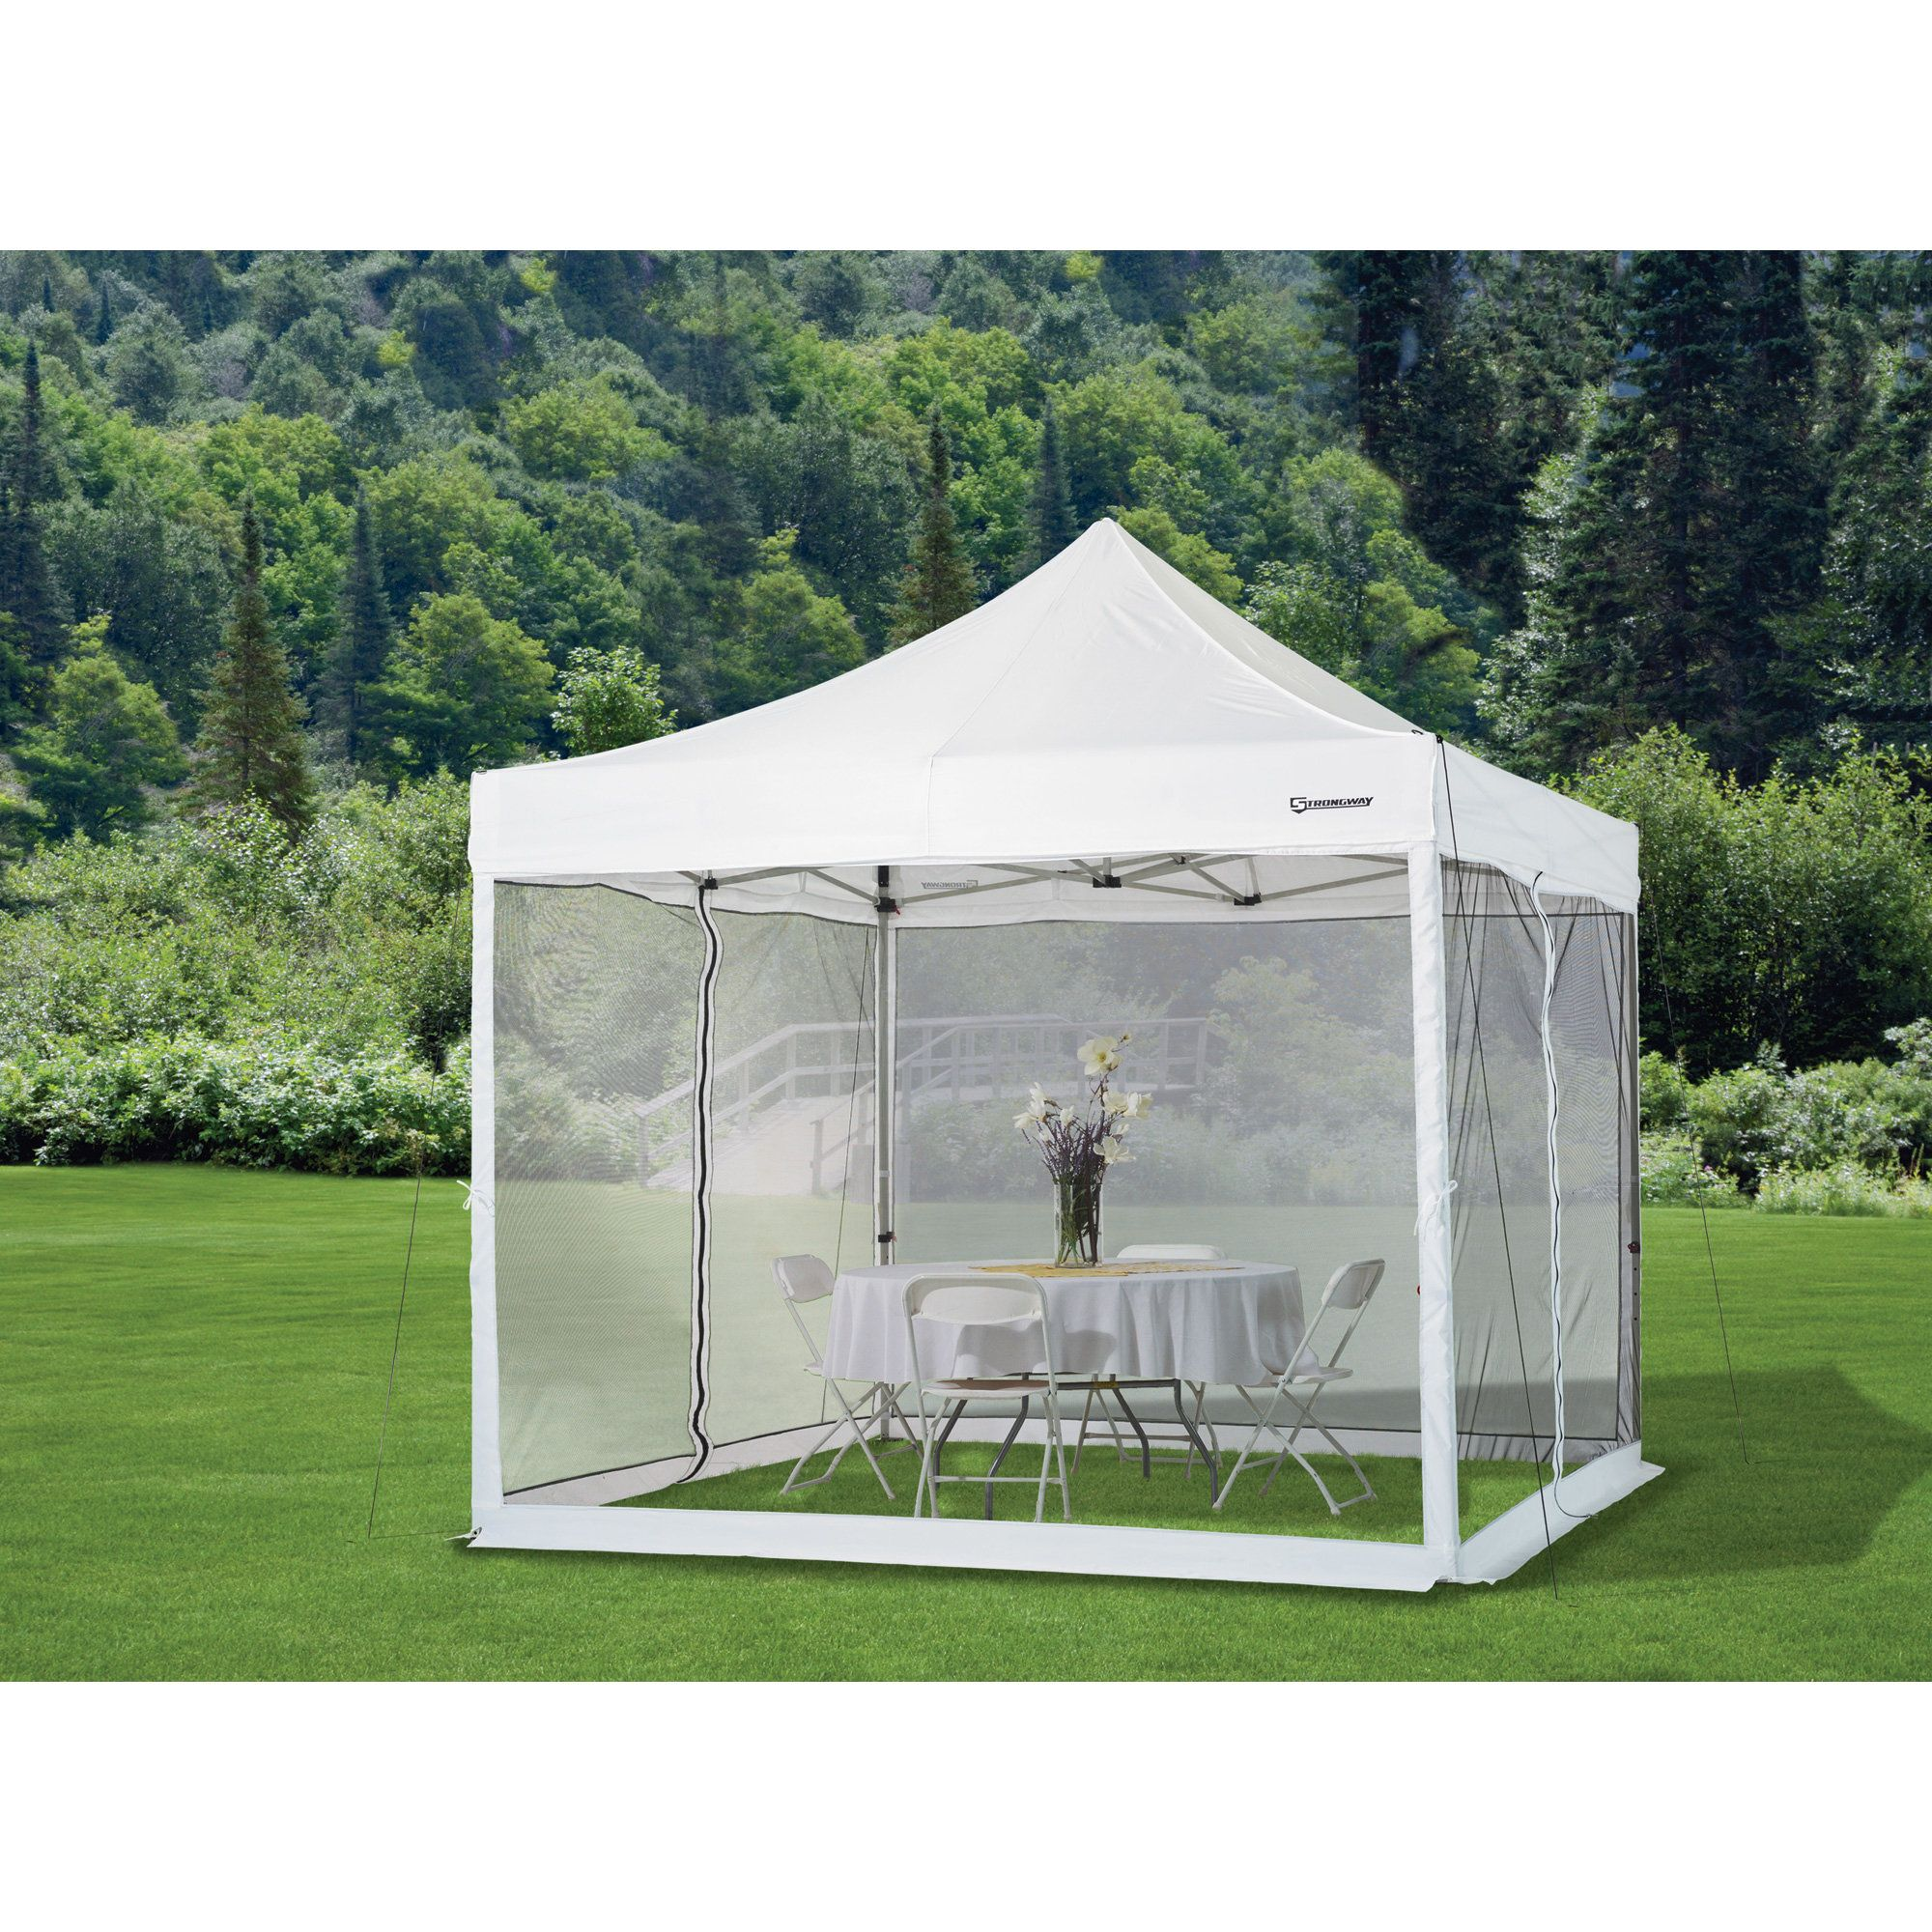 Strongway Pop Up Outdoor Canopy Tent Mesh Curtain 10ft X 10ft In 2020 Canopy Tent Outdoor Canopy Outdoor Canopy Tent